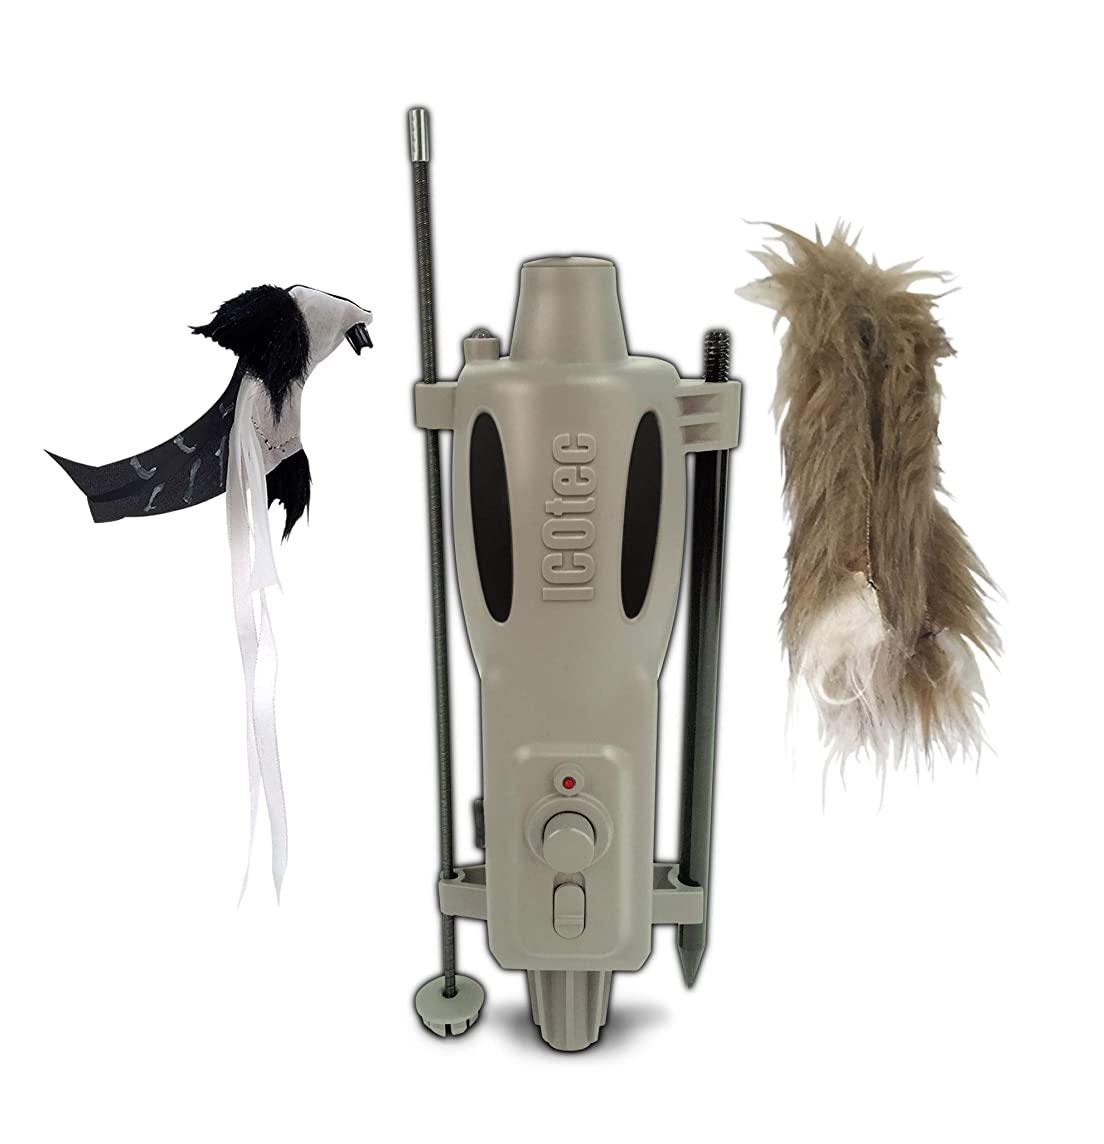 Icotec PD200 Stand Alone Predator Decoy – Lightweight, Compact, and Quiet – Includes Speed Dial, Intermittent Motion, LED Lights, and 2 Quick Change Toppers